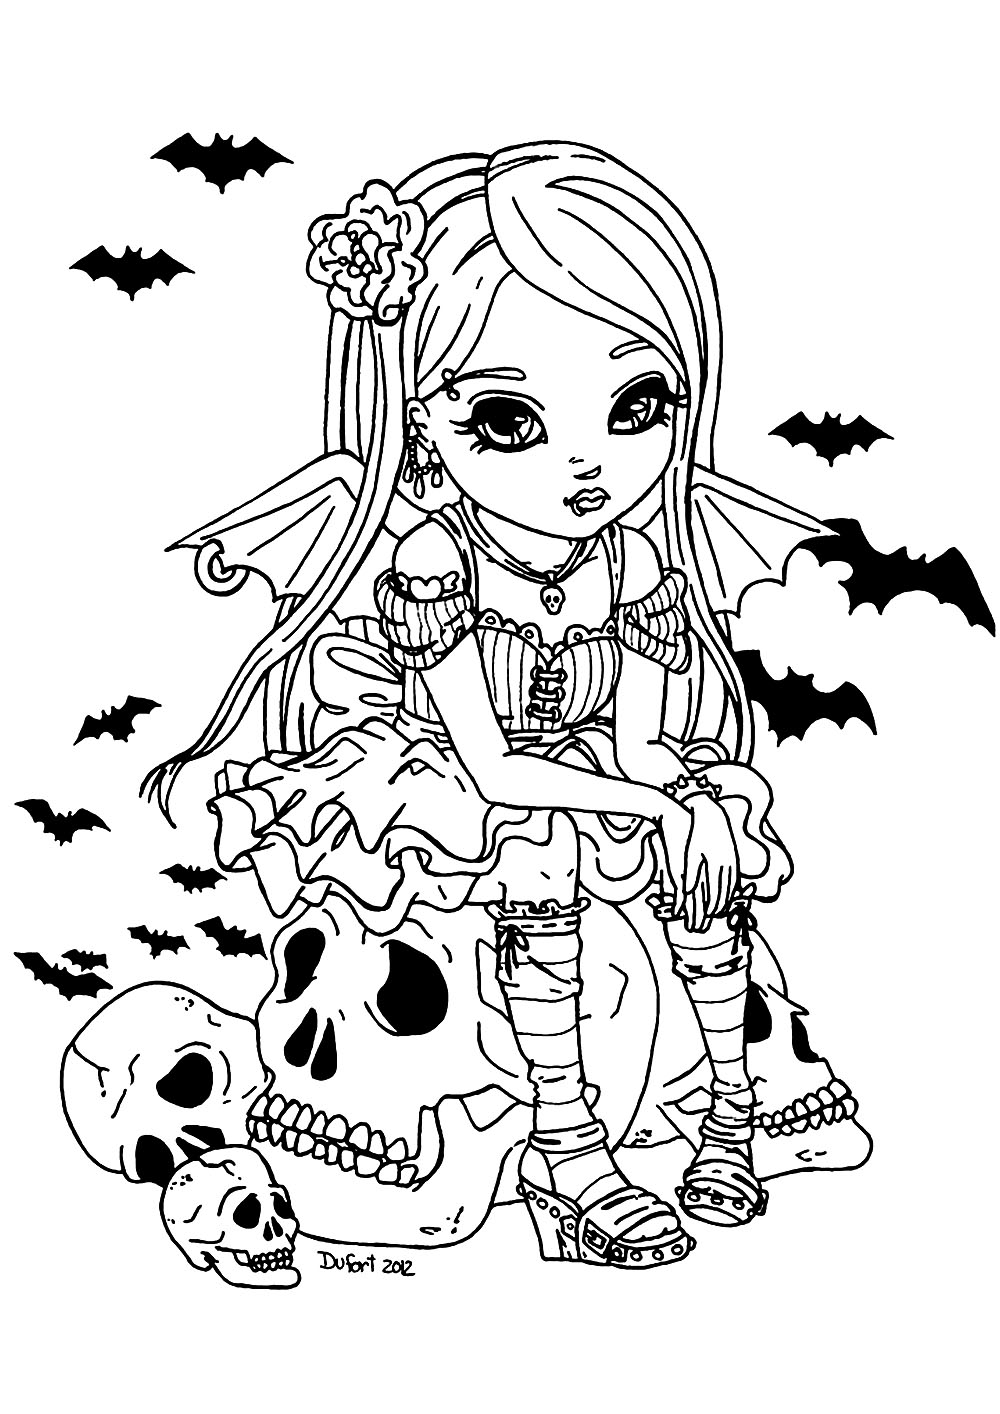 color this cute little vampire girl sitting on a big